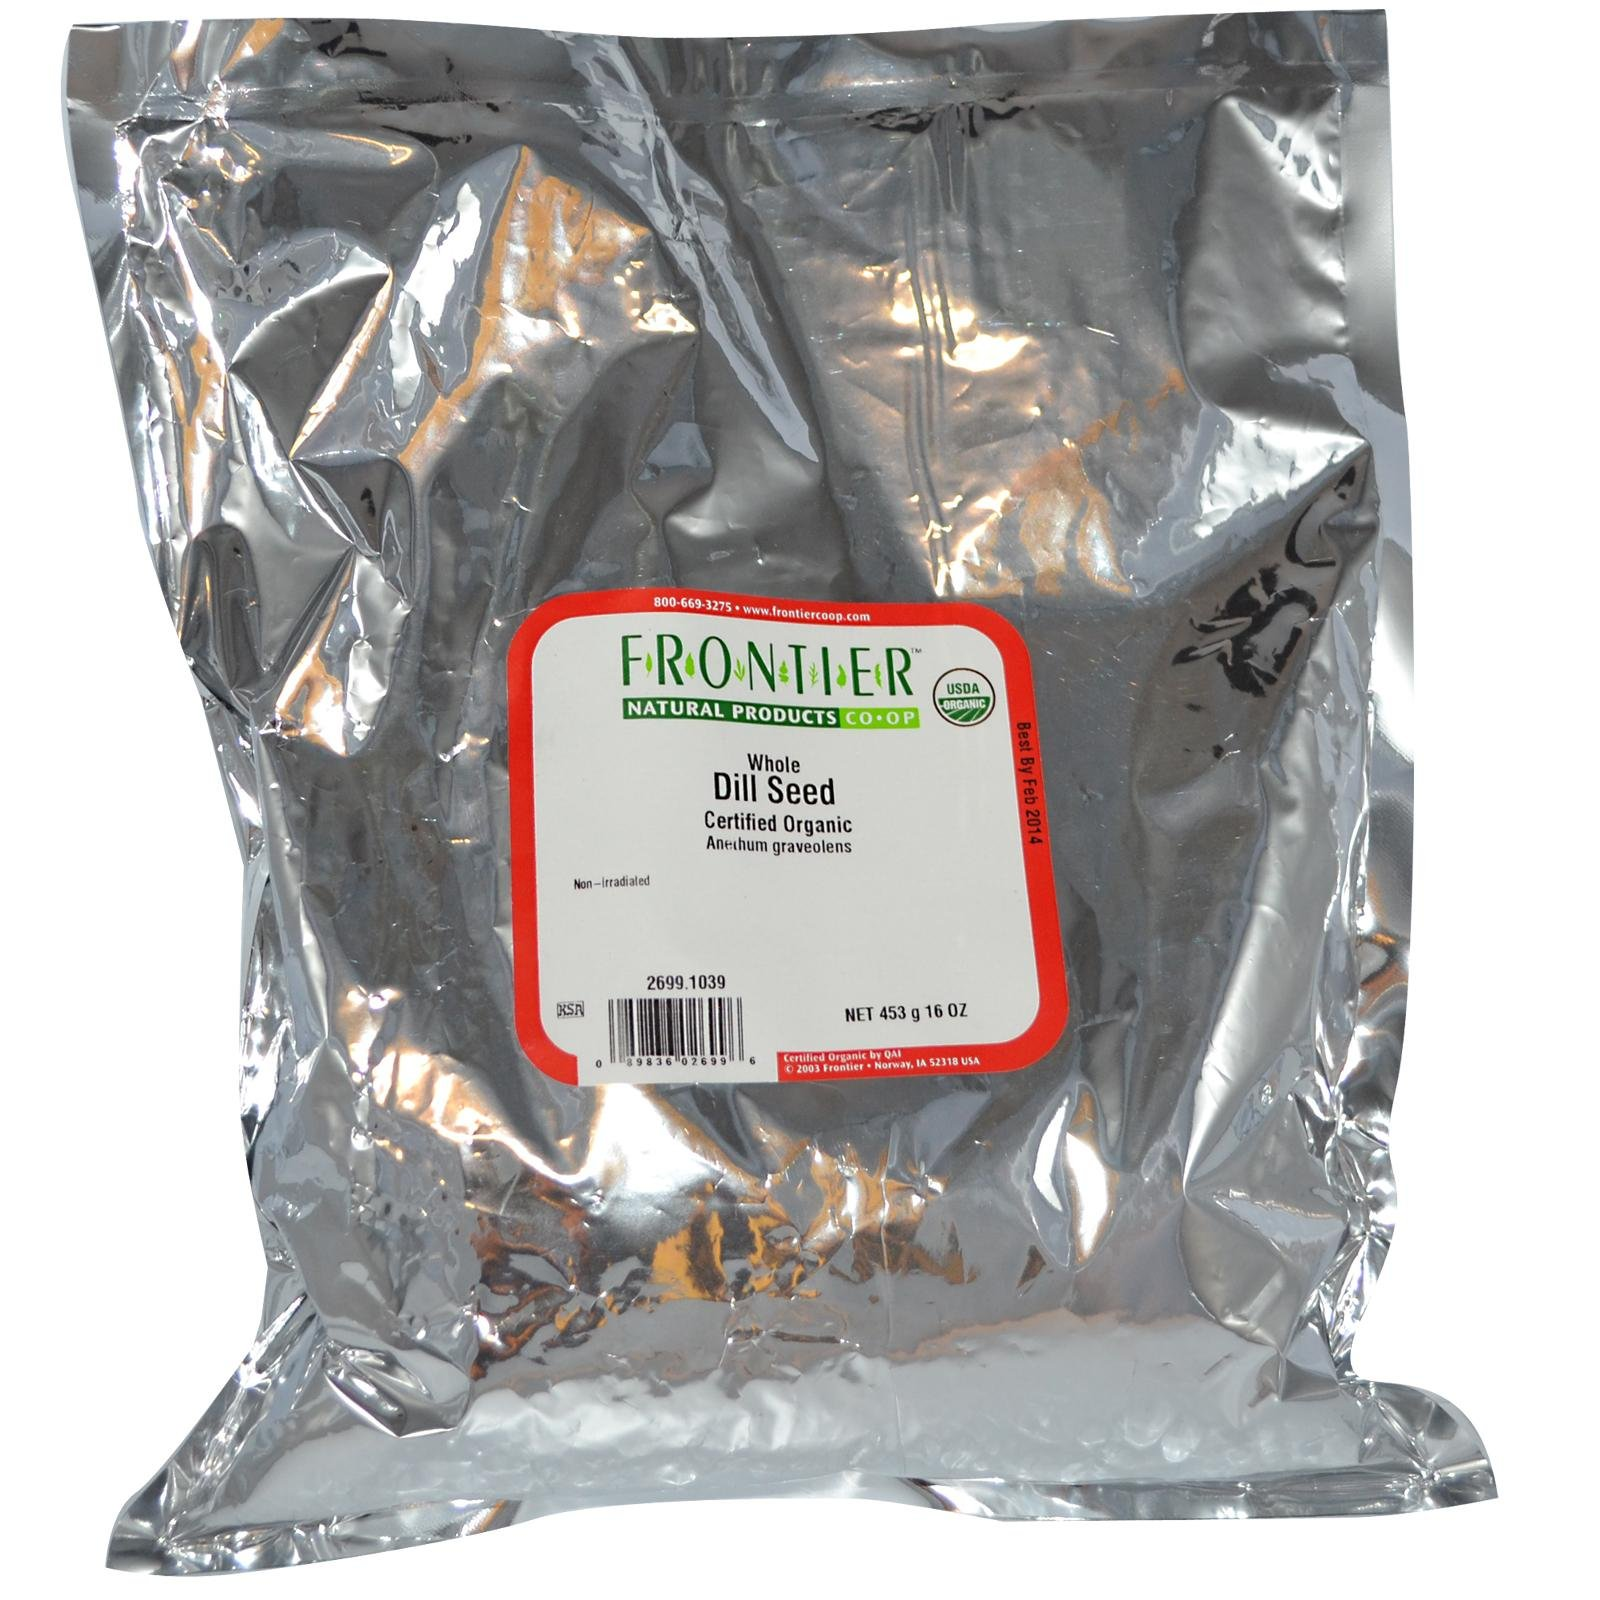 Frontier Natural Products Organic Dill Seed Whole -- 1 lb